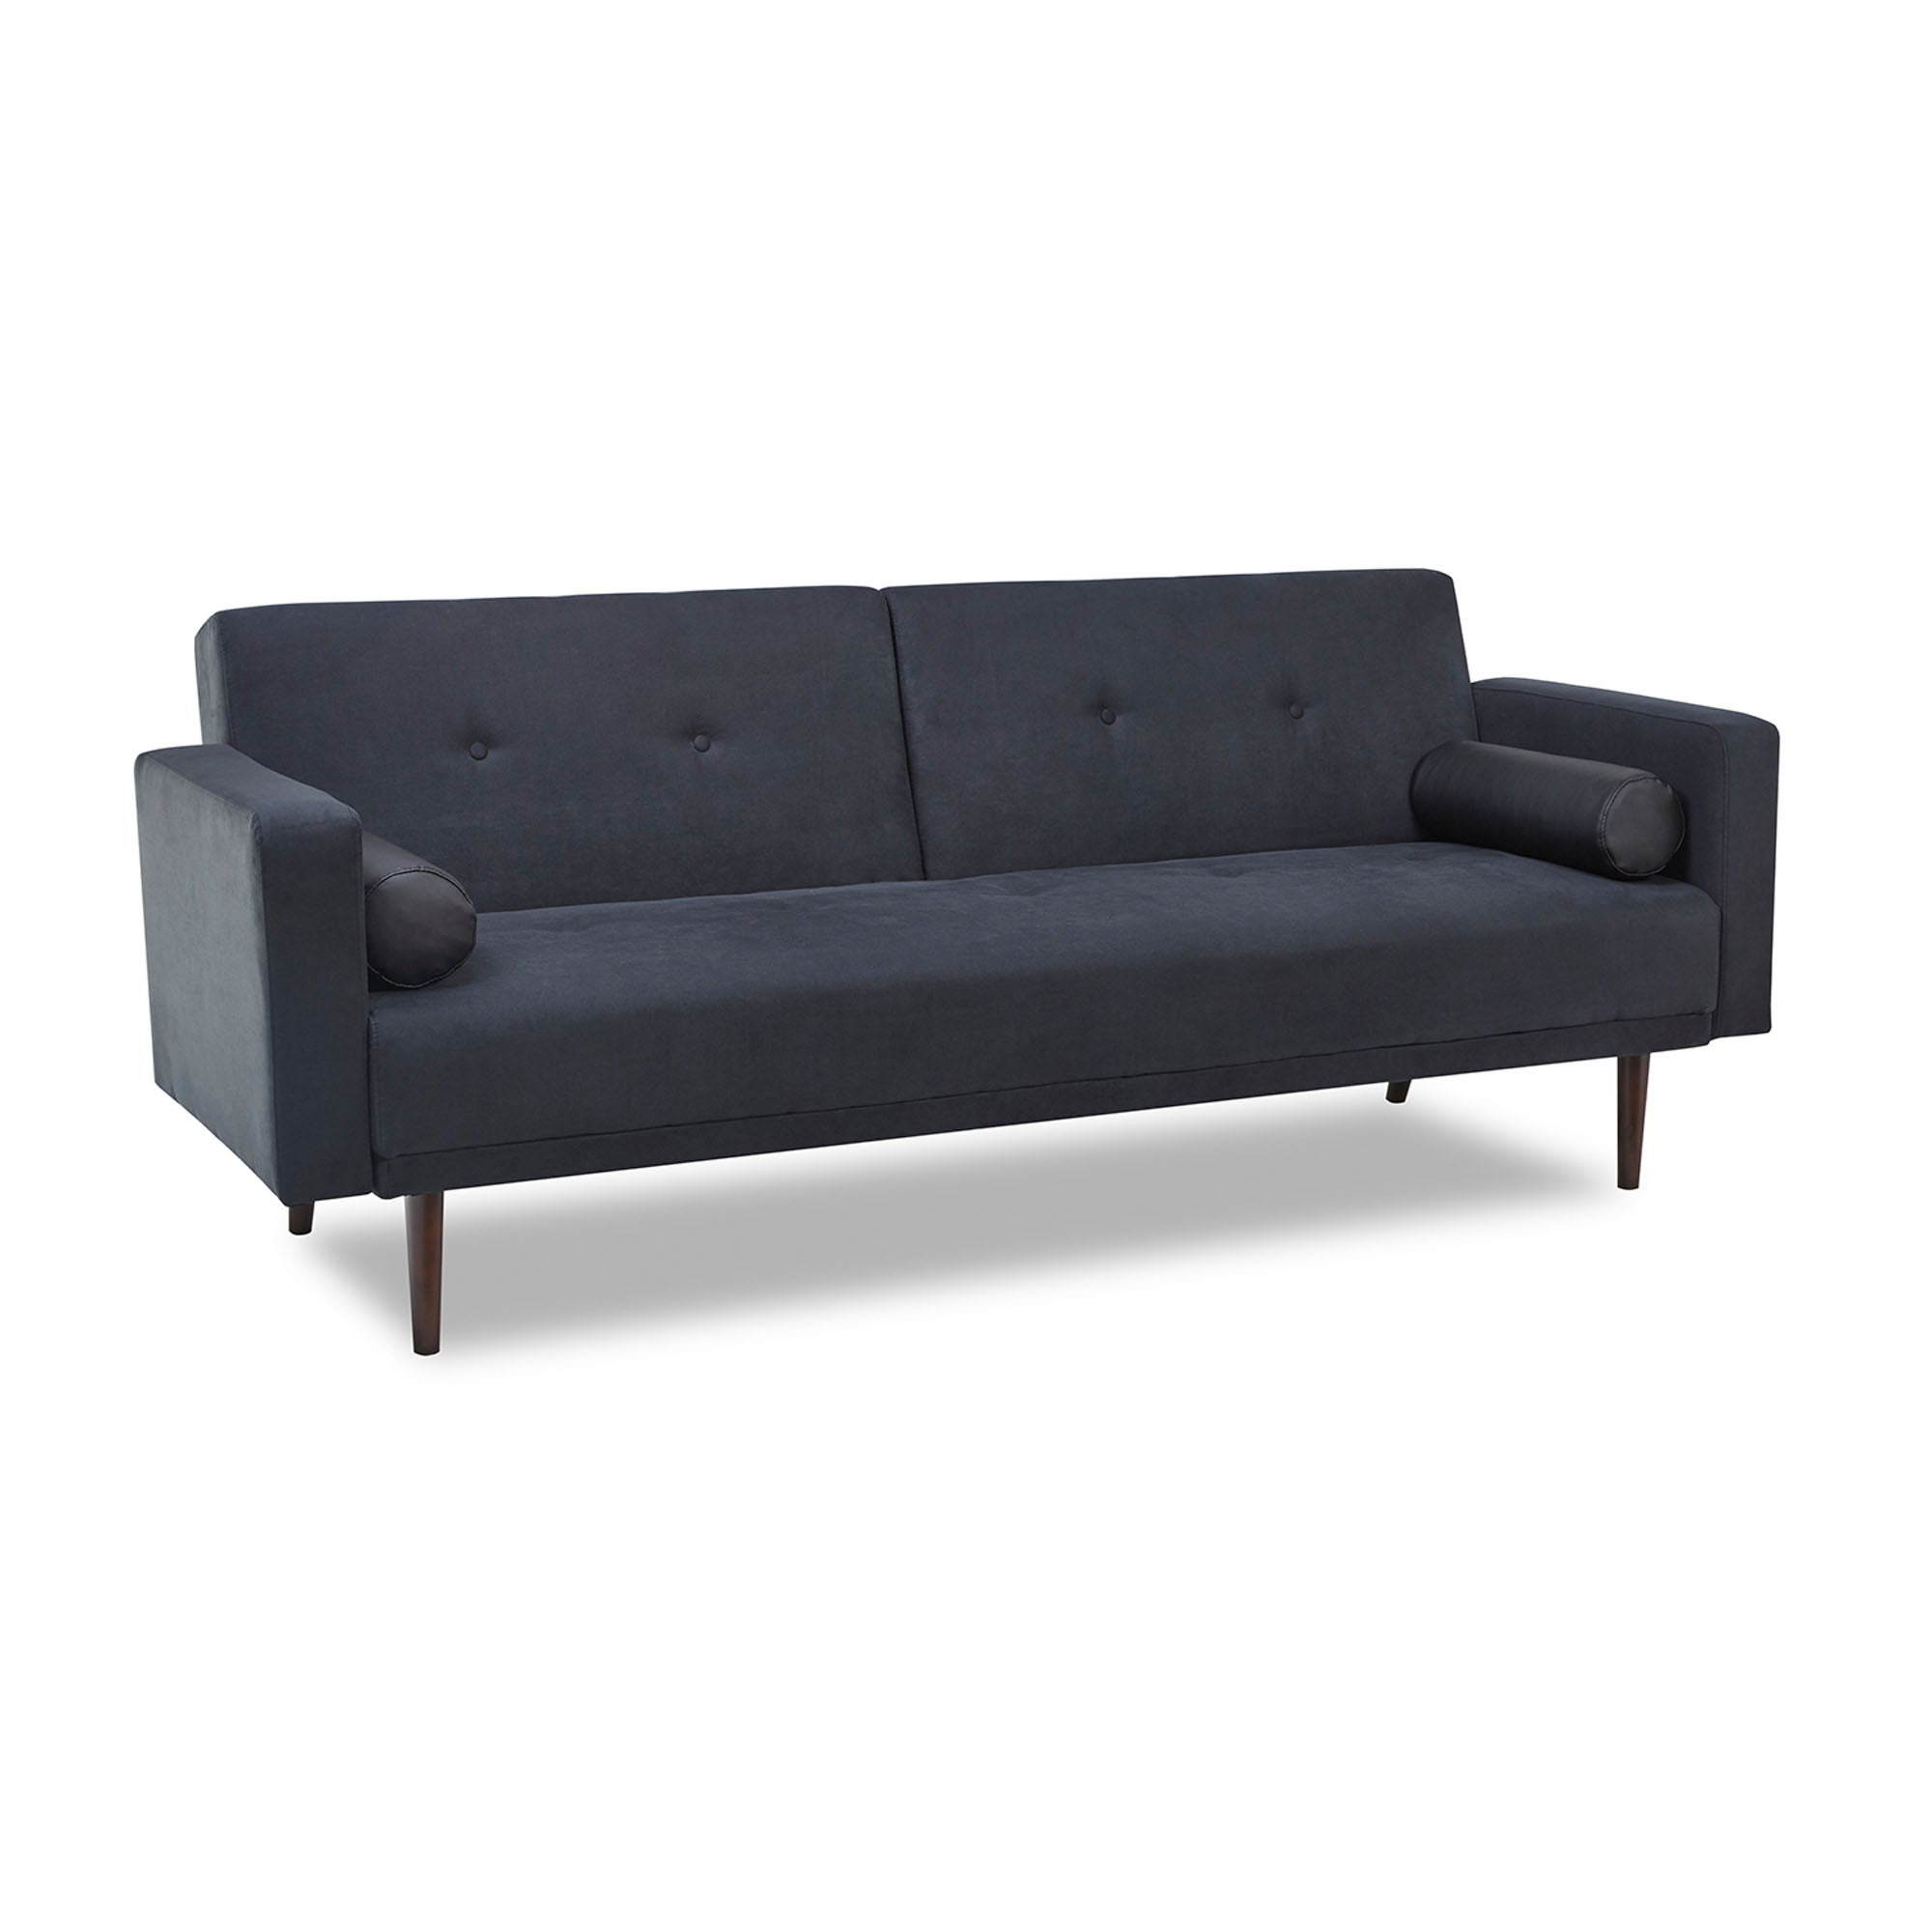 Photo of Sebastian fabric sofa bed black